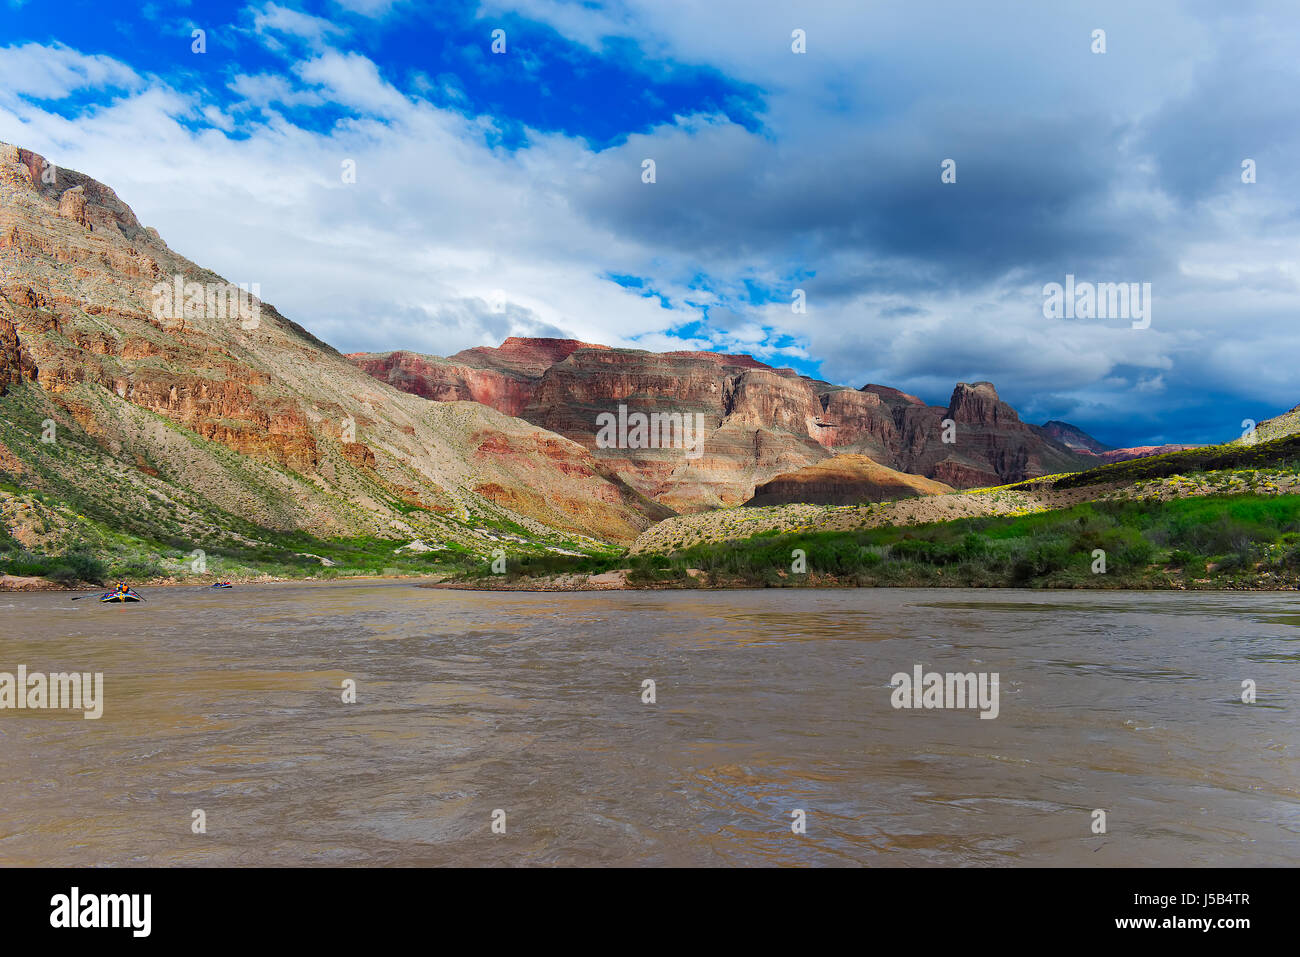 Cliffs from the Colorado River, Grand Canyon, USA - Stock Image